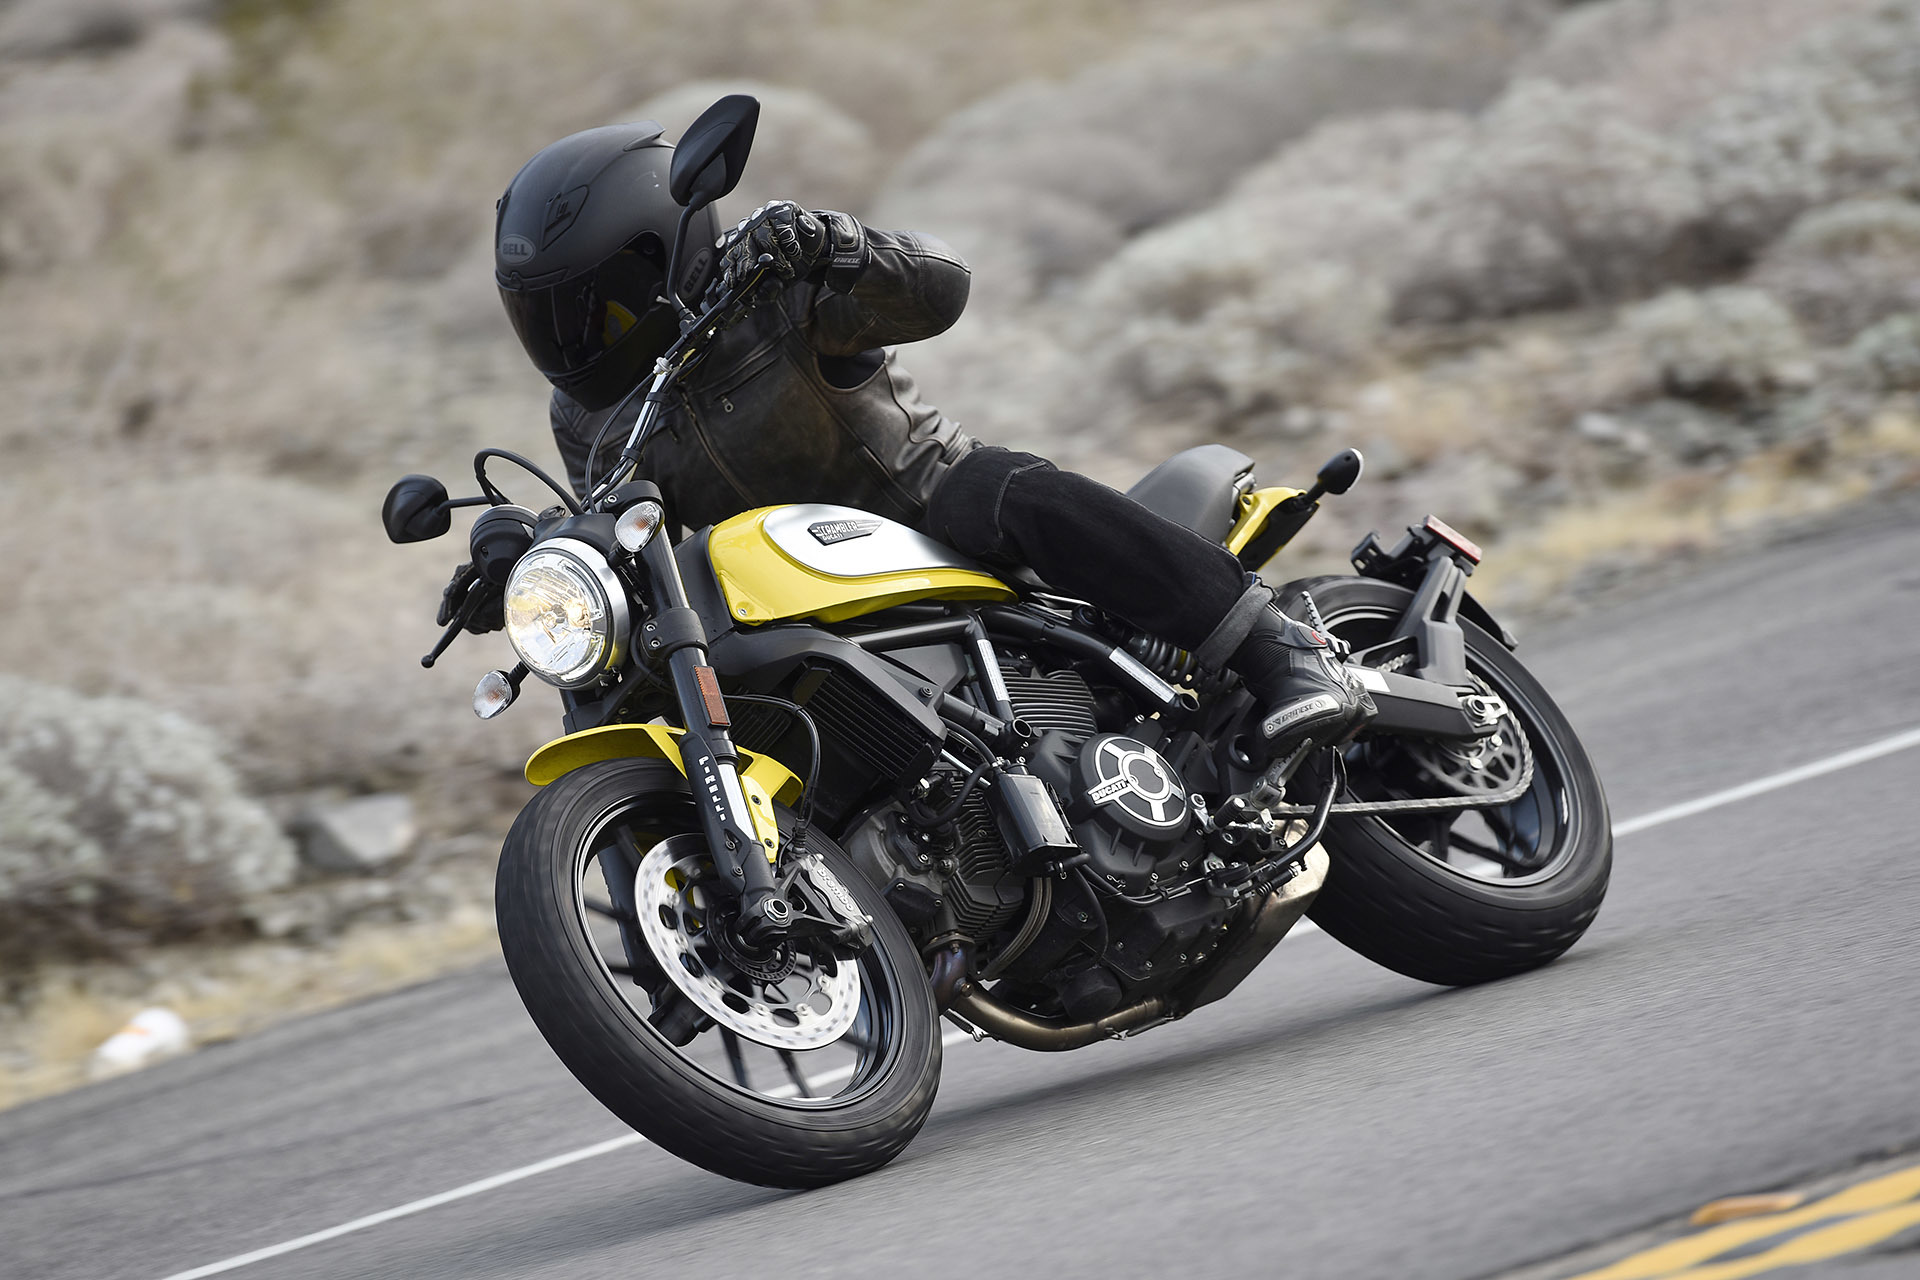 Posted by: Autoblog Canada on January 21st, 2015: www.beyond.ca/2015-ducati-scrambler/51573.html